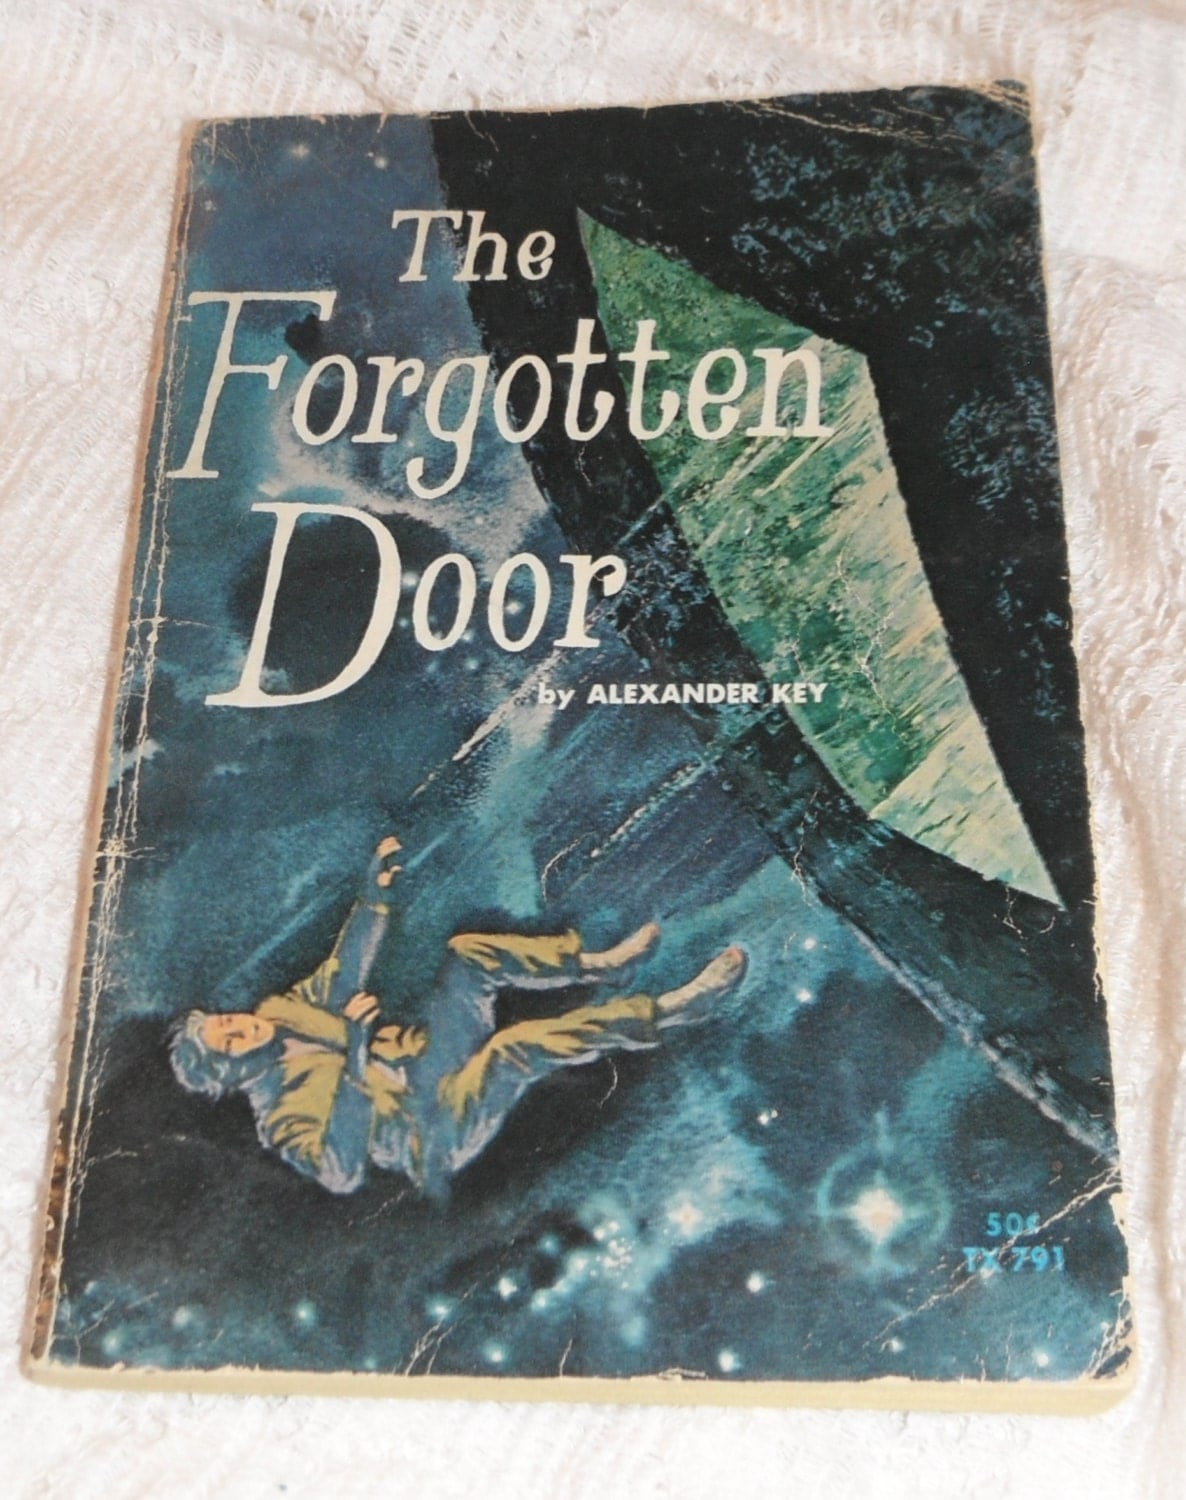 a review of the forgotten door by alexander key Alexander key (1904–1979) started out as an illustrator before he began writing science fiction novels for young readers he has published many titles, including sprockets: a little robot , mystery of the sassafras chair , and the forgotten door , winner of the lewis carroll shelf award.